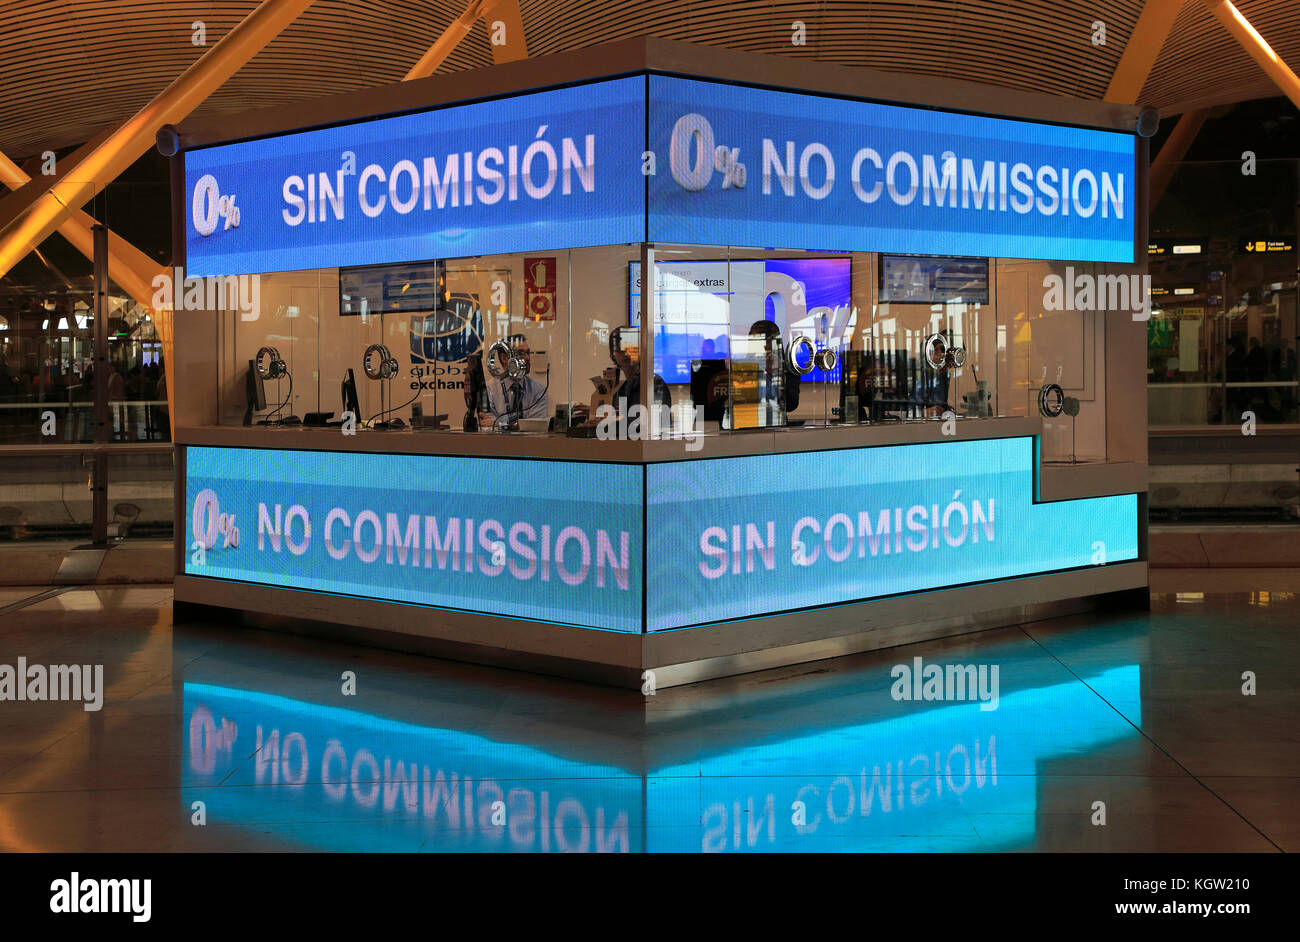 Airport booth photos airport booth images alamy - Bureau de change aeroport ...